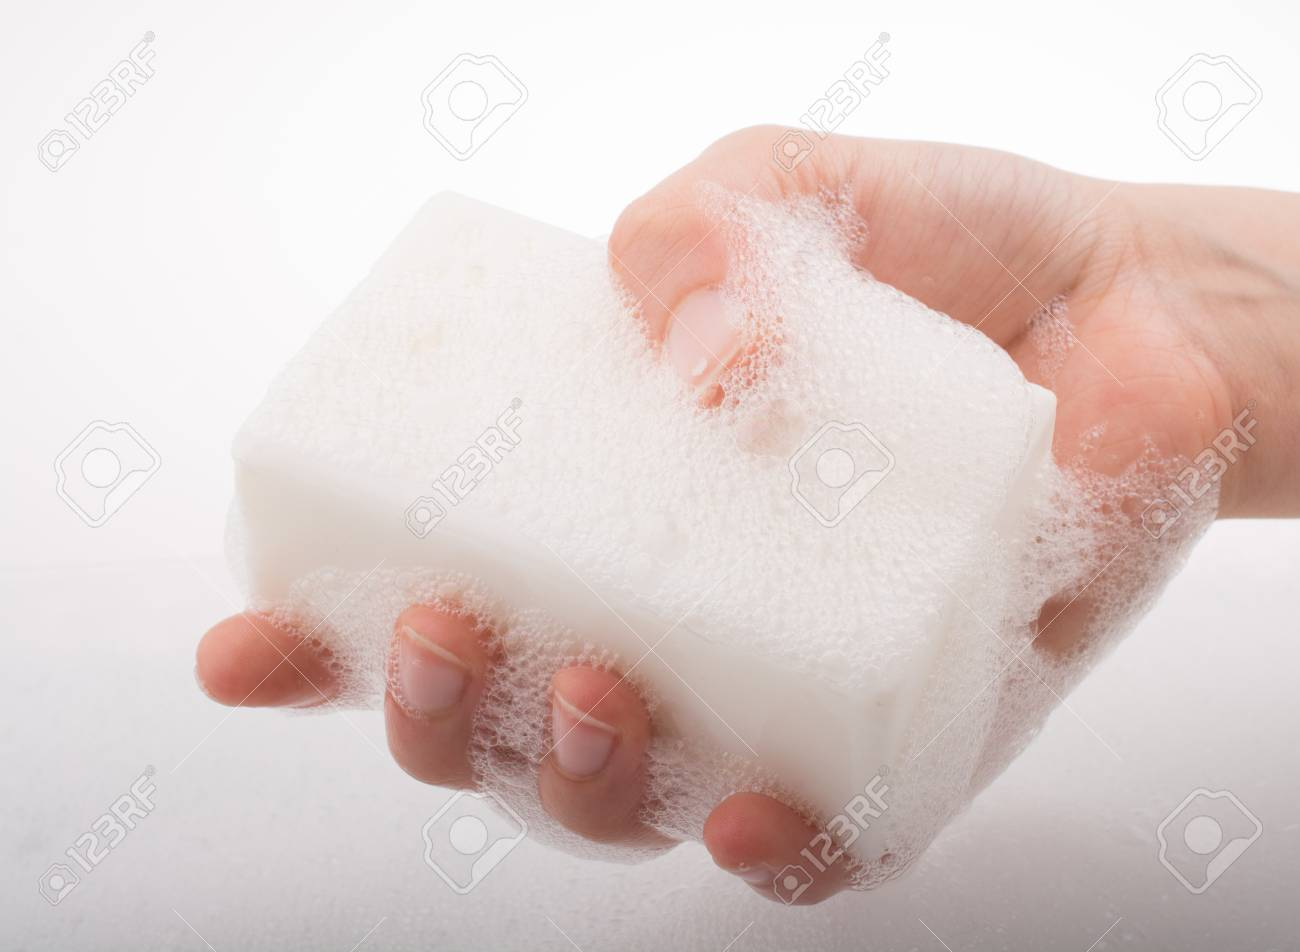 Hand Washing And Soap Foam On A Foamy Background Stock Photo 1300x952